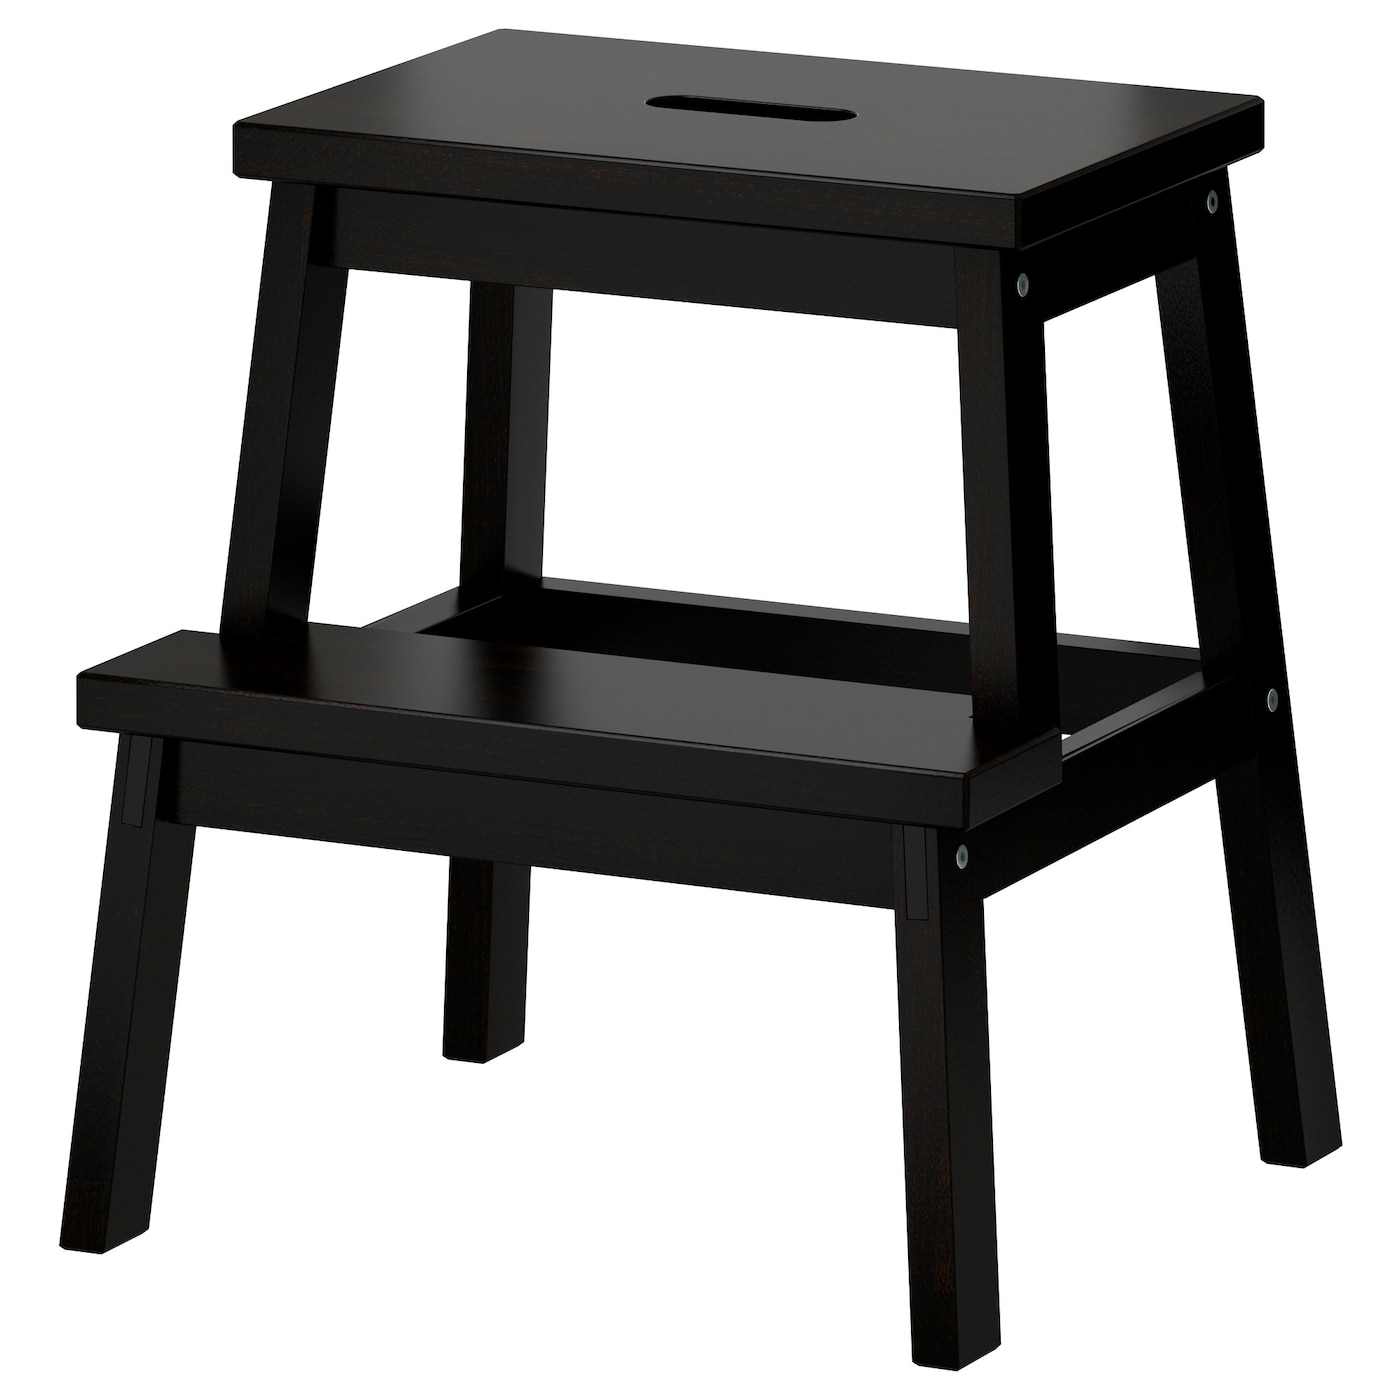 Bekv m step stool black 50 cm ikea - Black days ikea ...